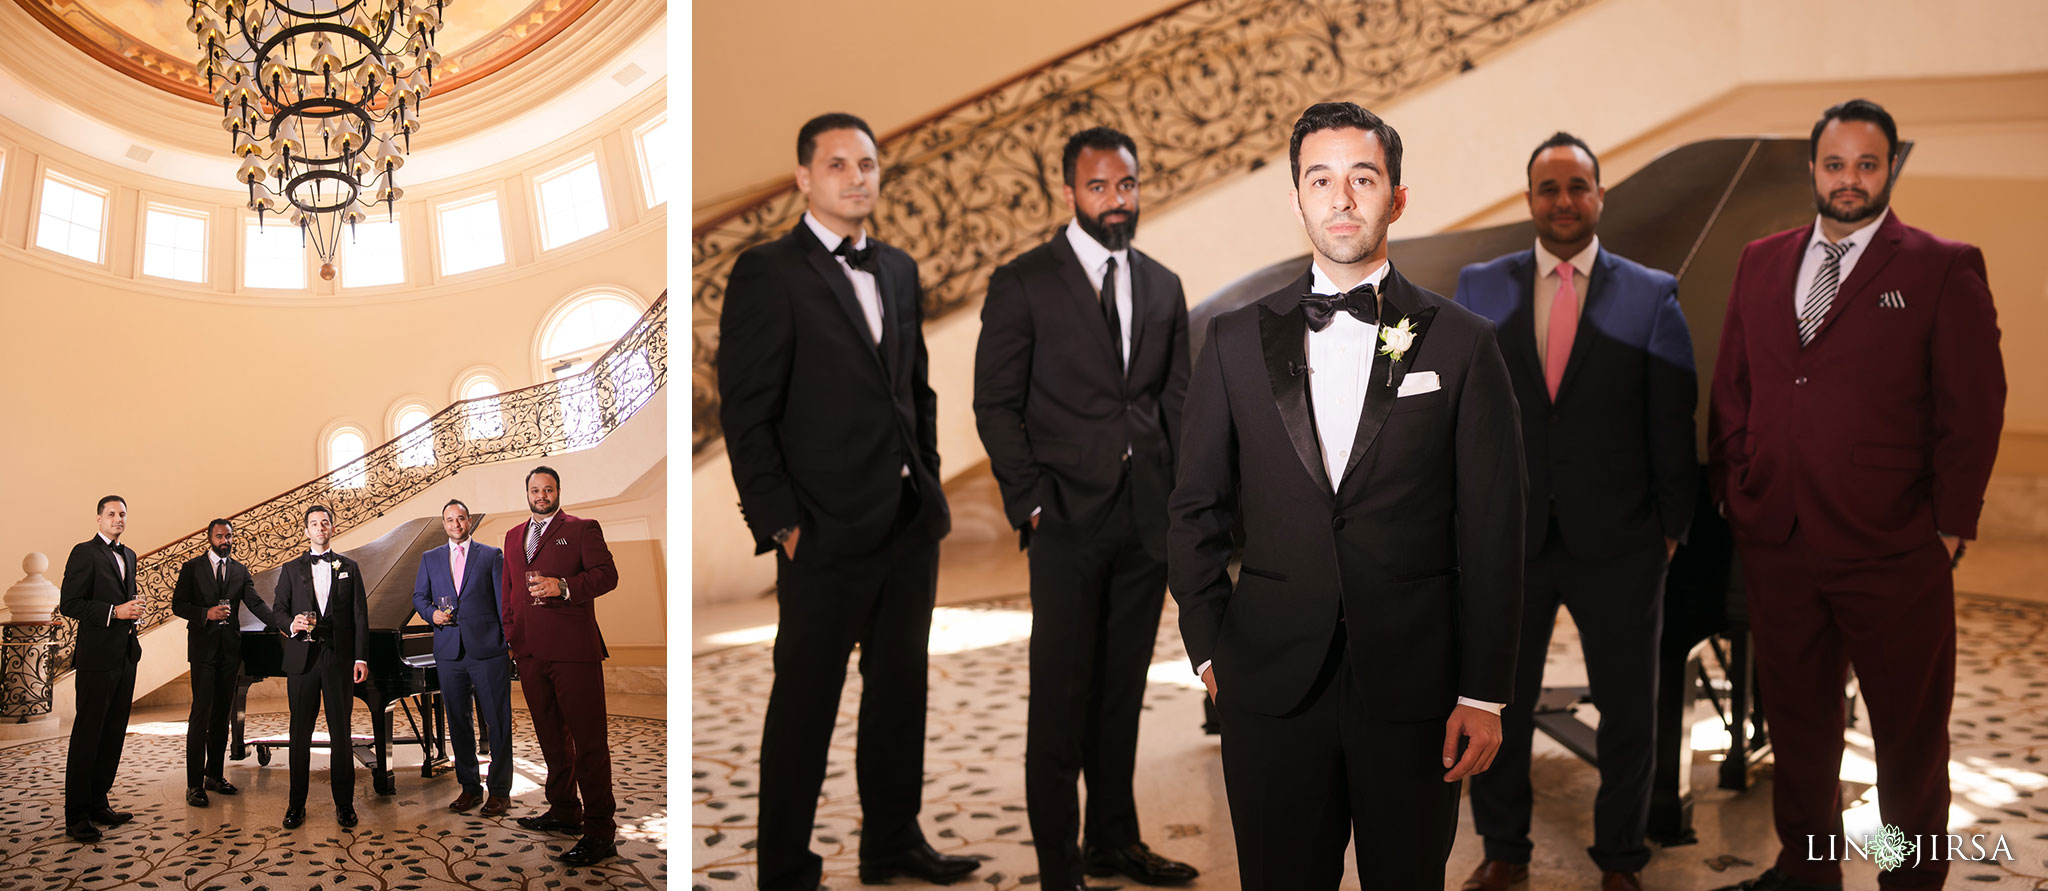 009 monarch beach resort dana point persian wedding groomsmen photography